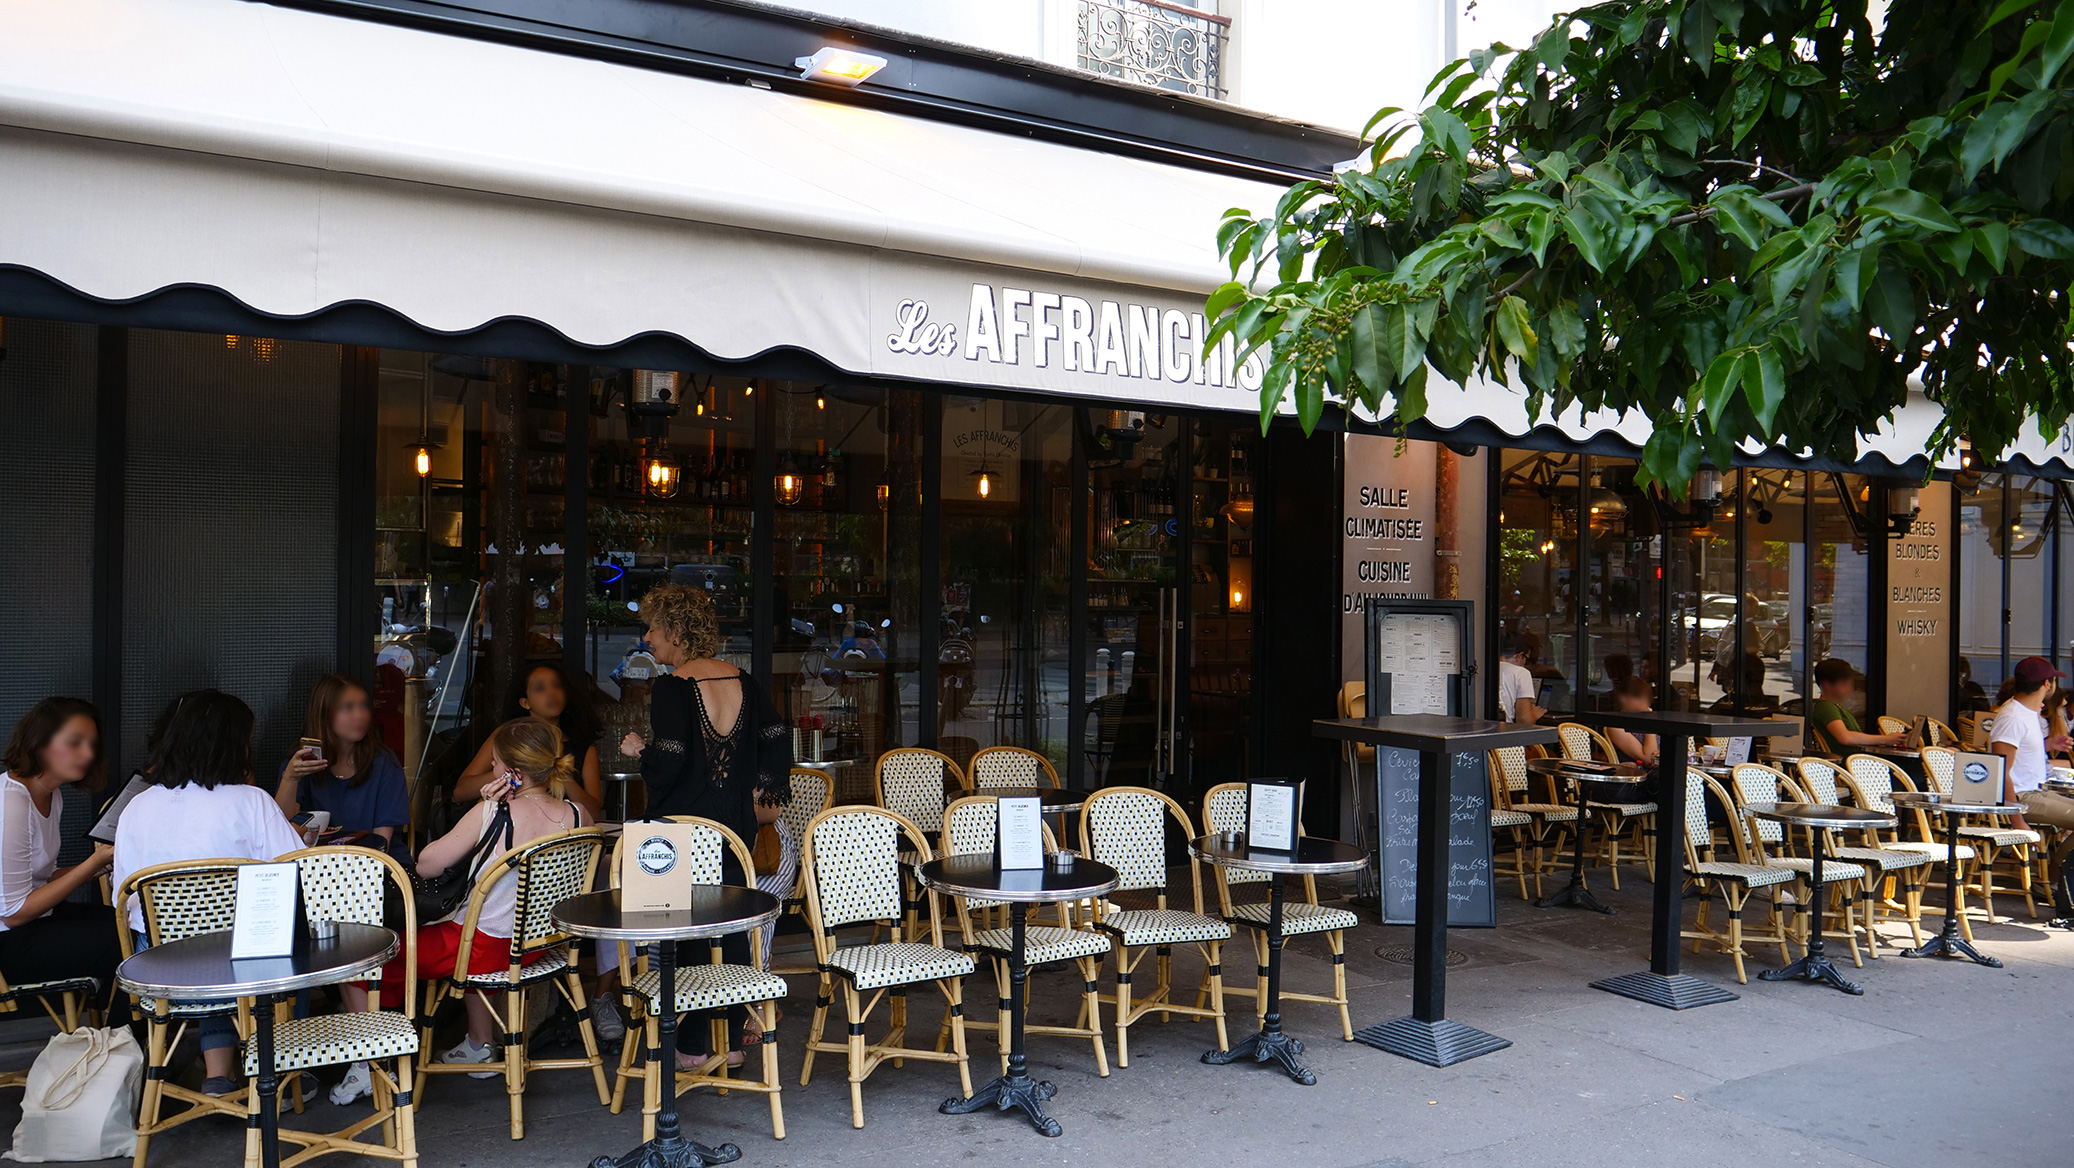 Terrasse Les Affranchis Paris 13e